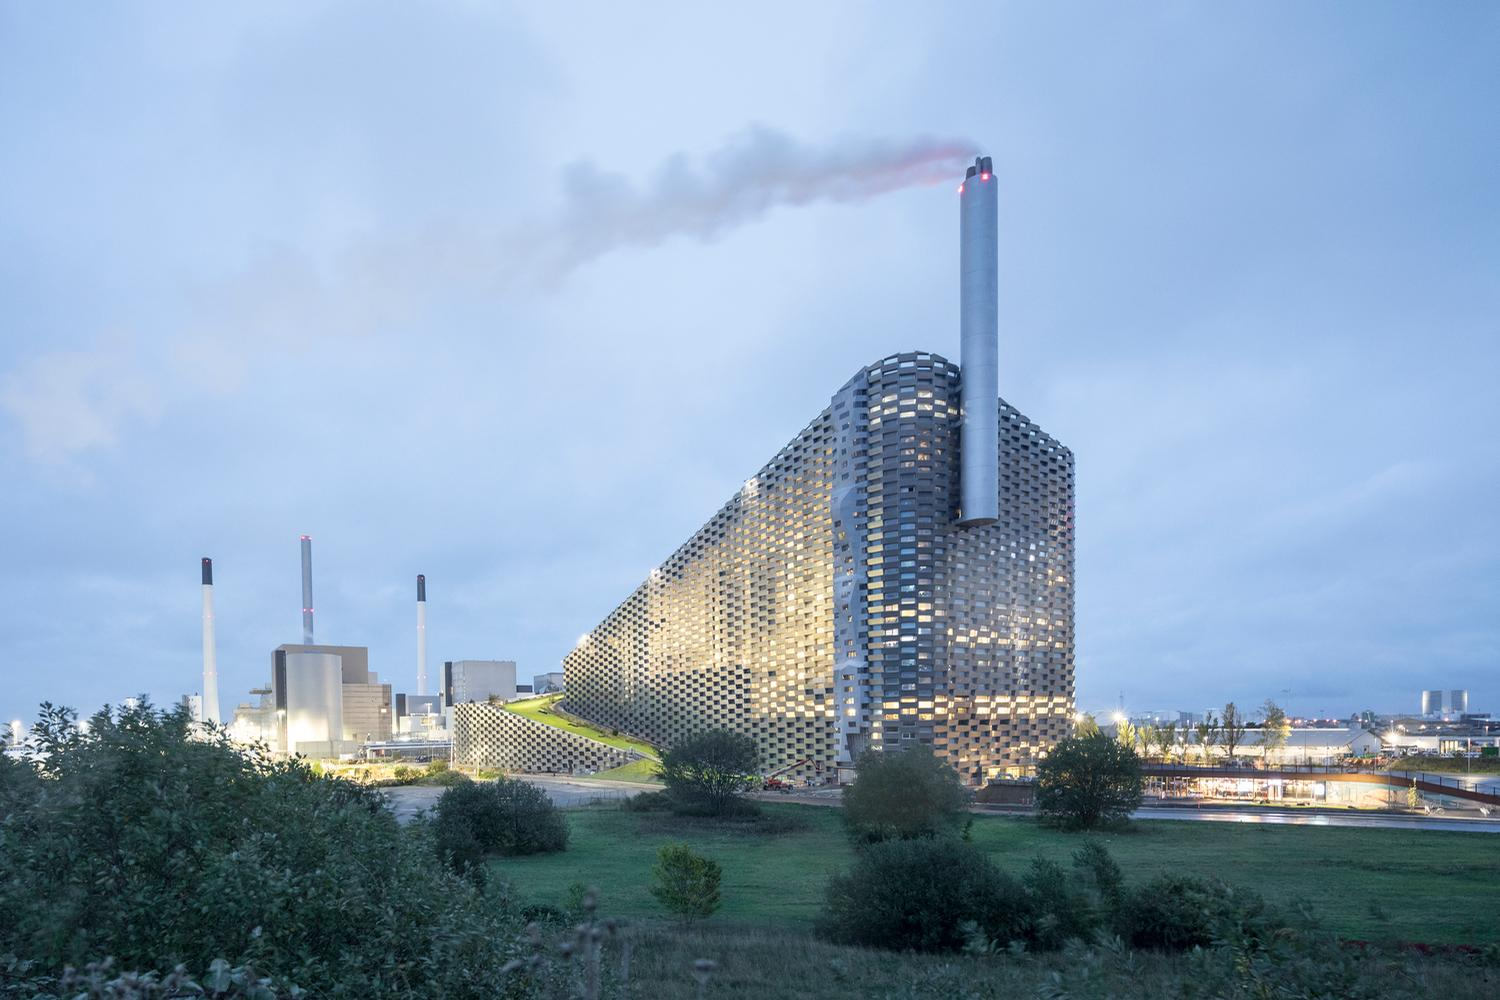 It is said to be the cleanest waste-to-power plant in the world / Laurian Ghinitoiu